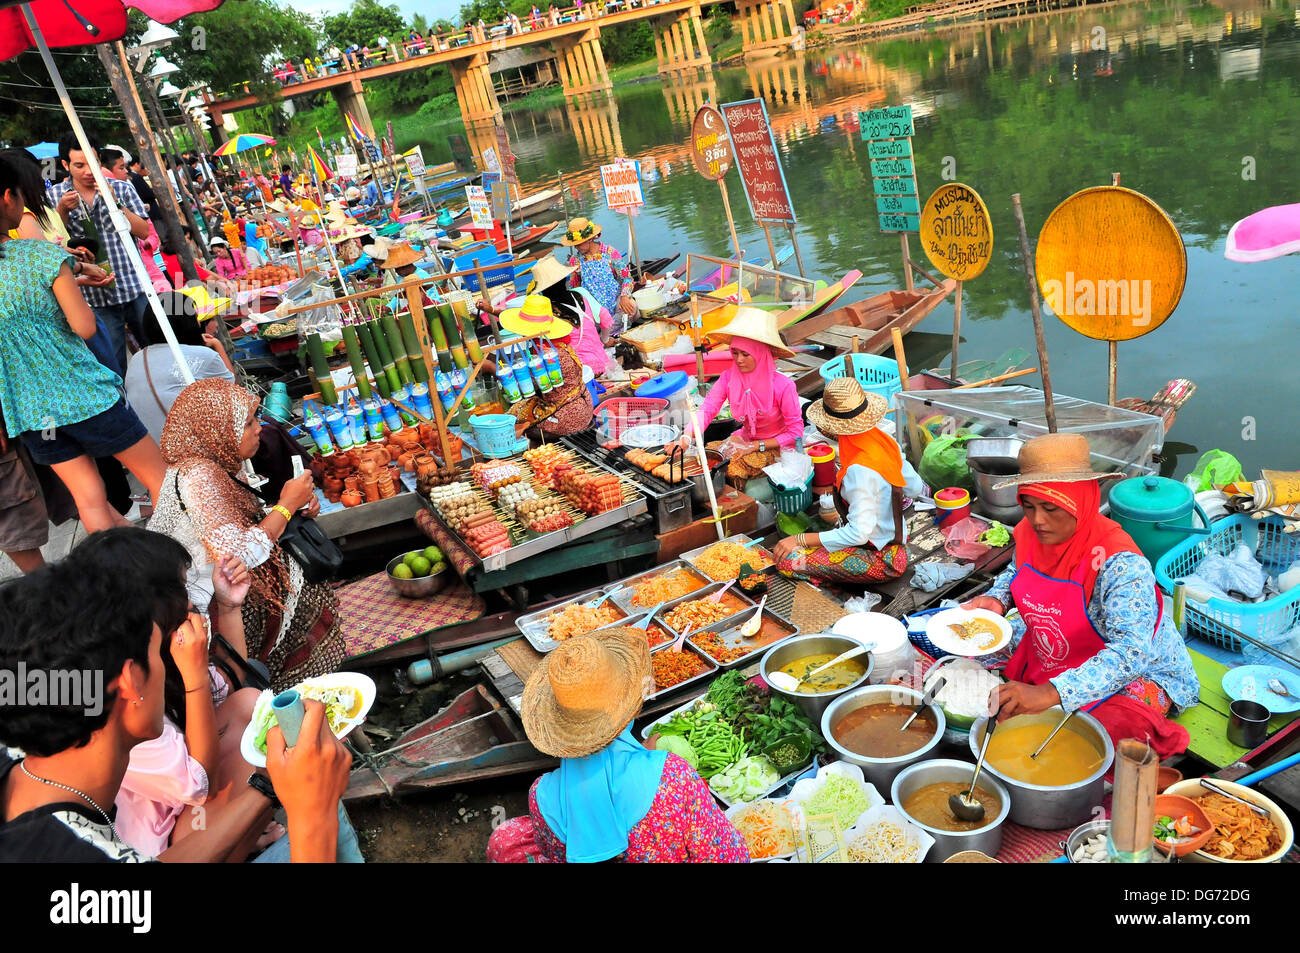 floating market in thailand Thailand's famous floating markets are buzzing with various food and item stalls   there's a street market in thailand that's entirely on water.